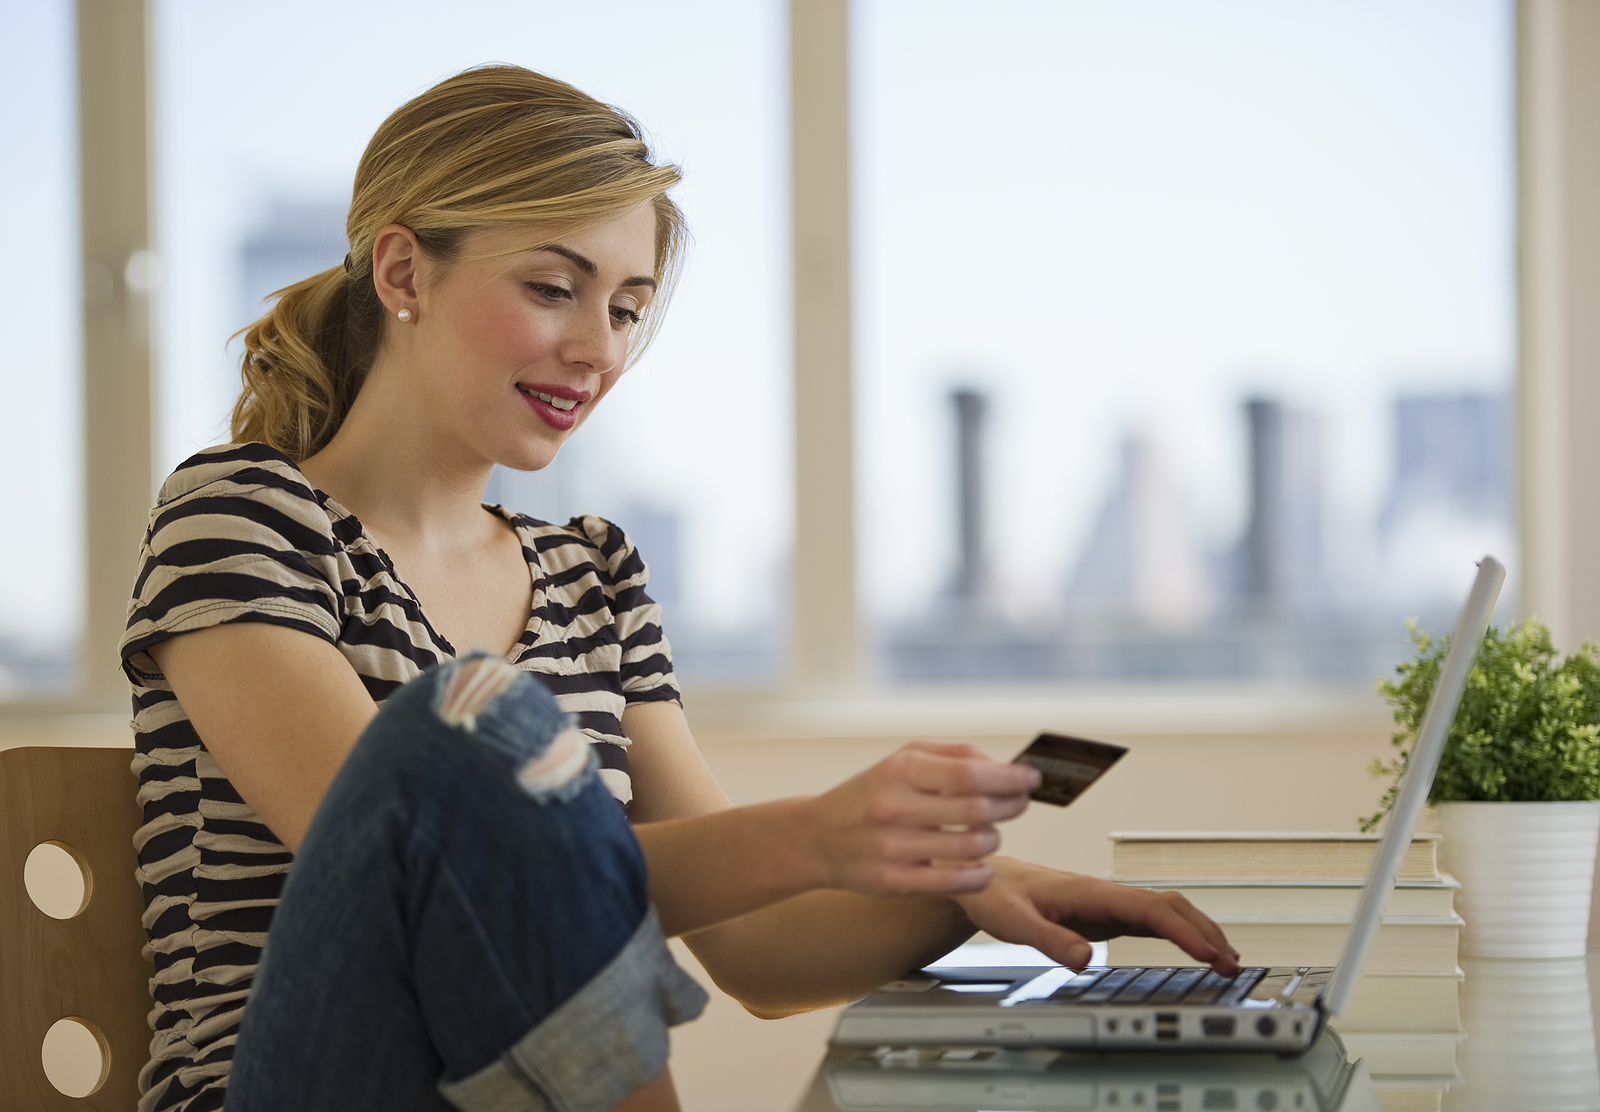 a young woman buys something online with her credit card.